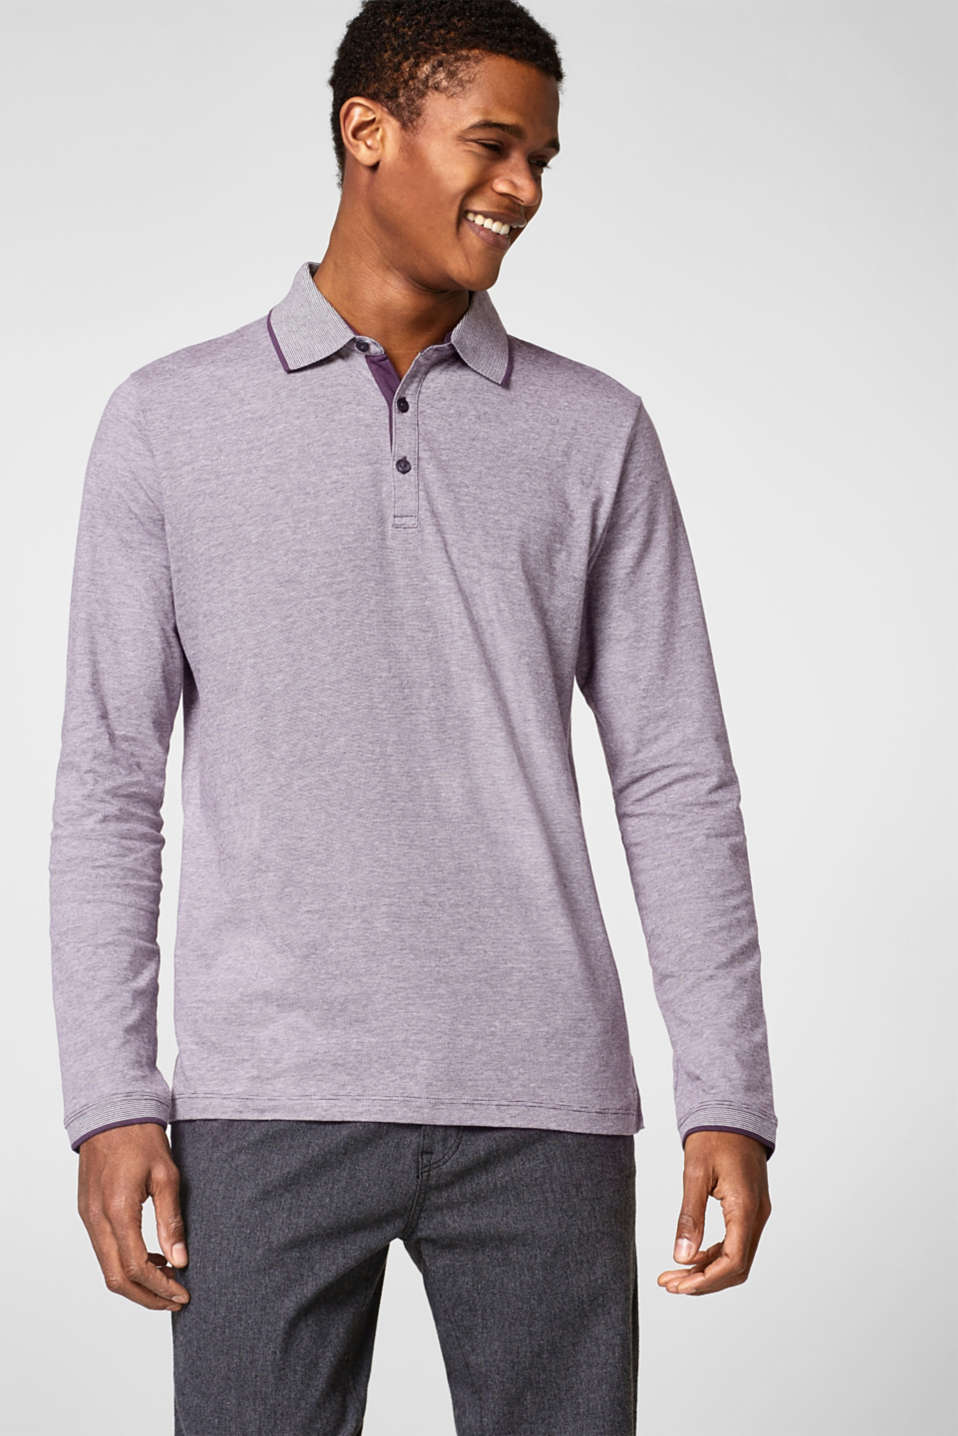 Esprit - Long sleeve polo top in cotton jersey